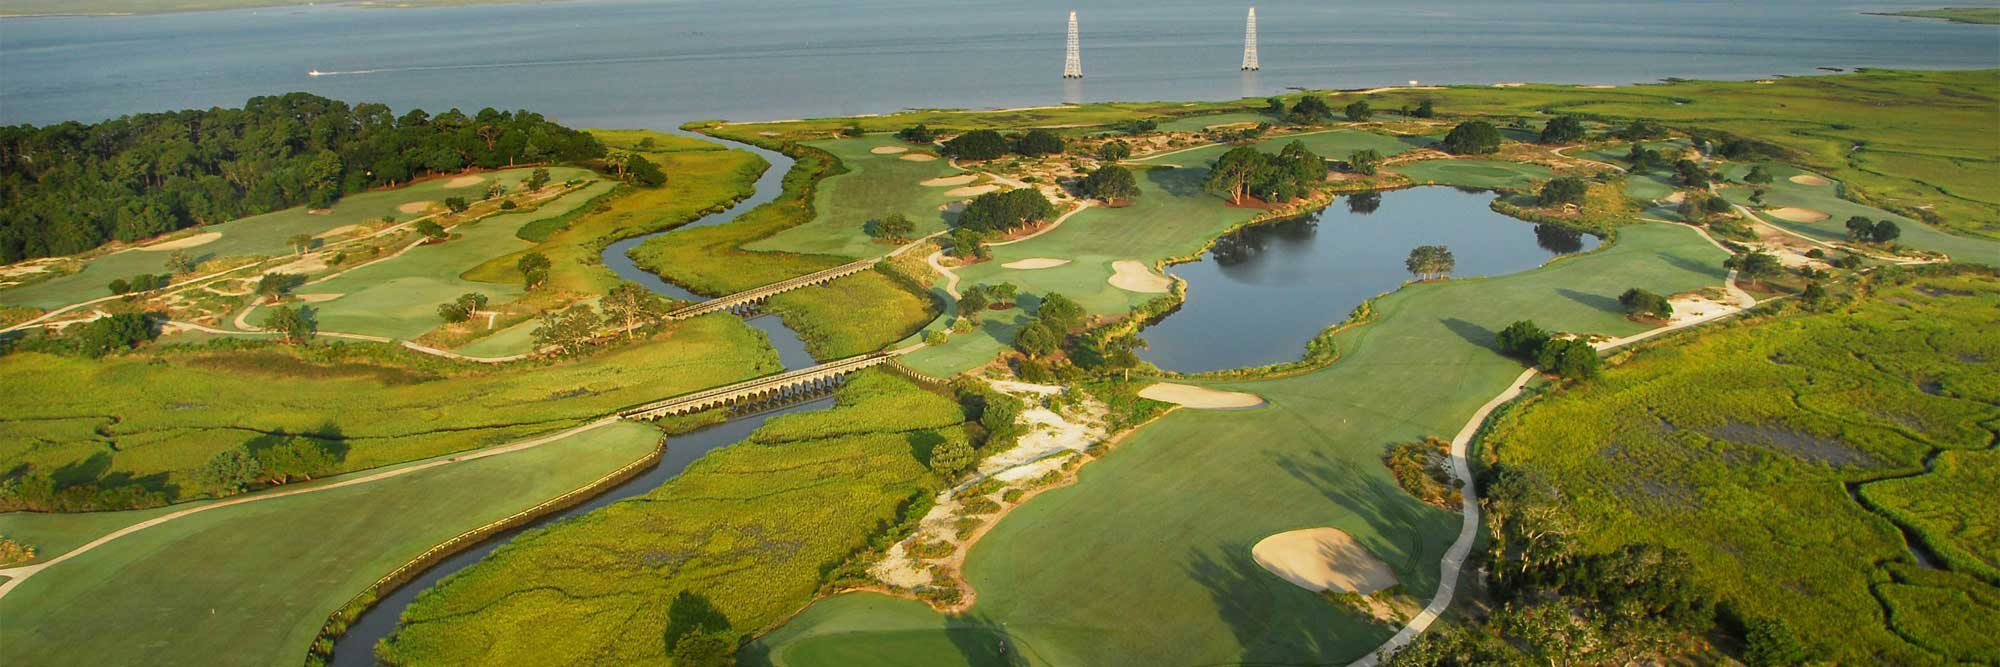 Sea Island, GA: Sea Island Stay and Play w/ 3 Nights, 3 Rounds and Breakfast! For $389 per person / per day!